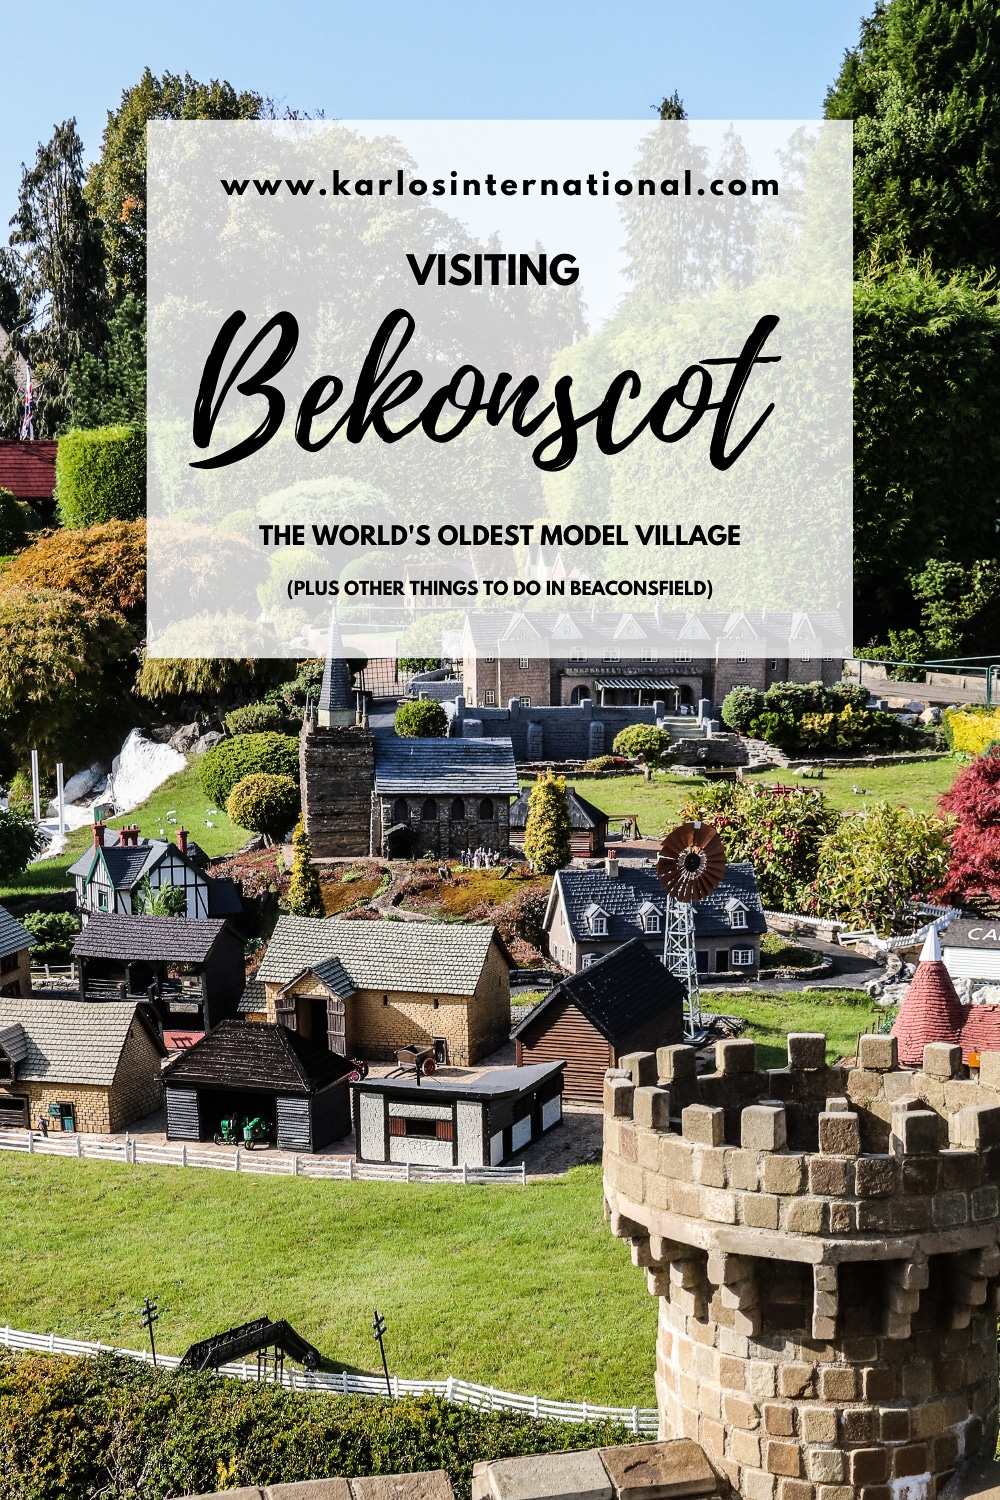 Visiting Bekonscot Model Village - the world's oldest model village - plus other things to do in Beaconsfield